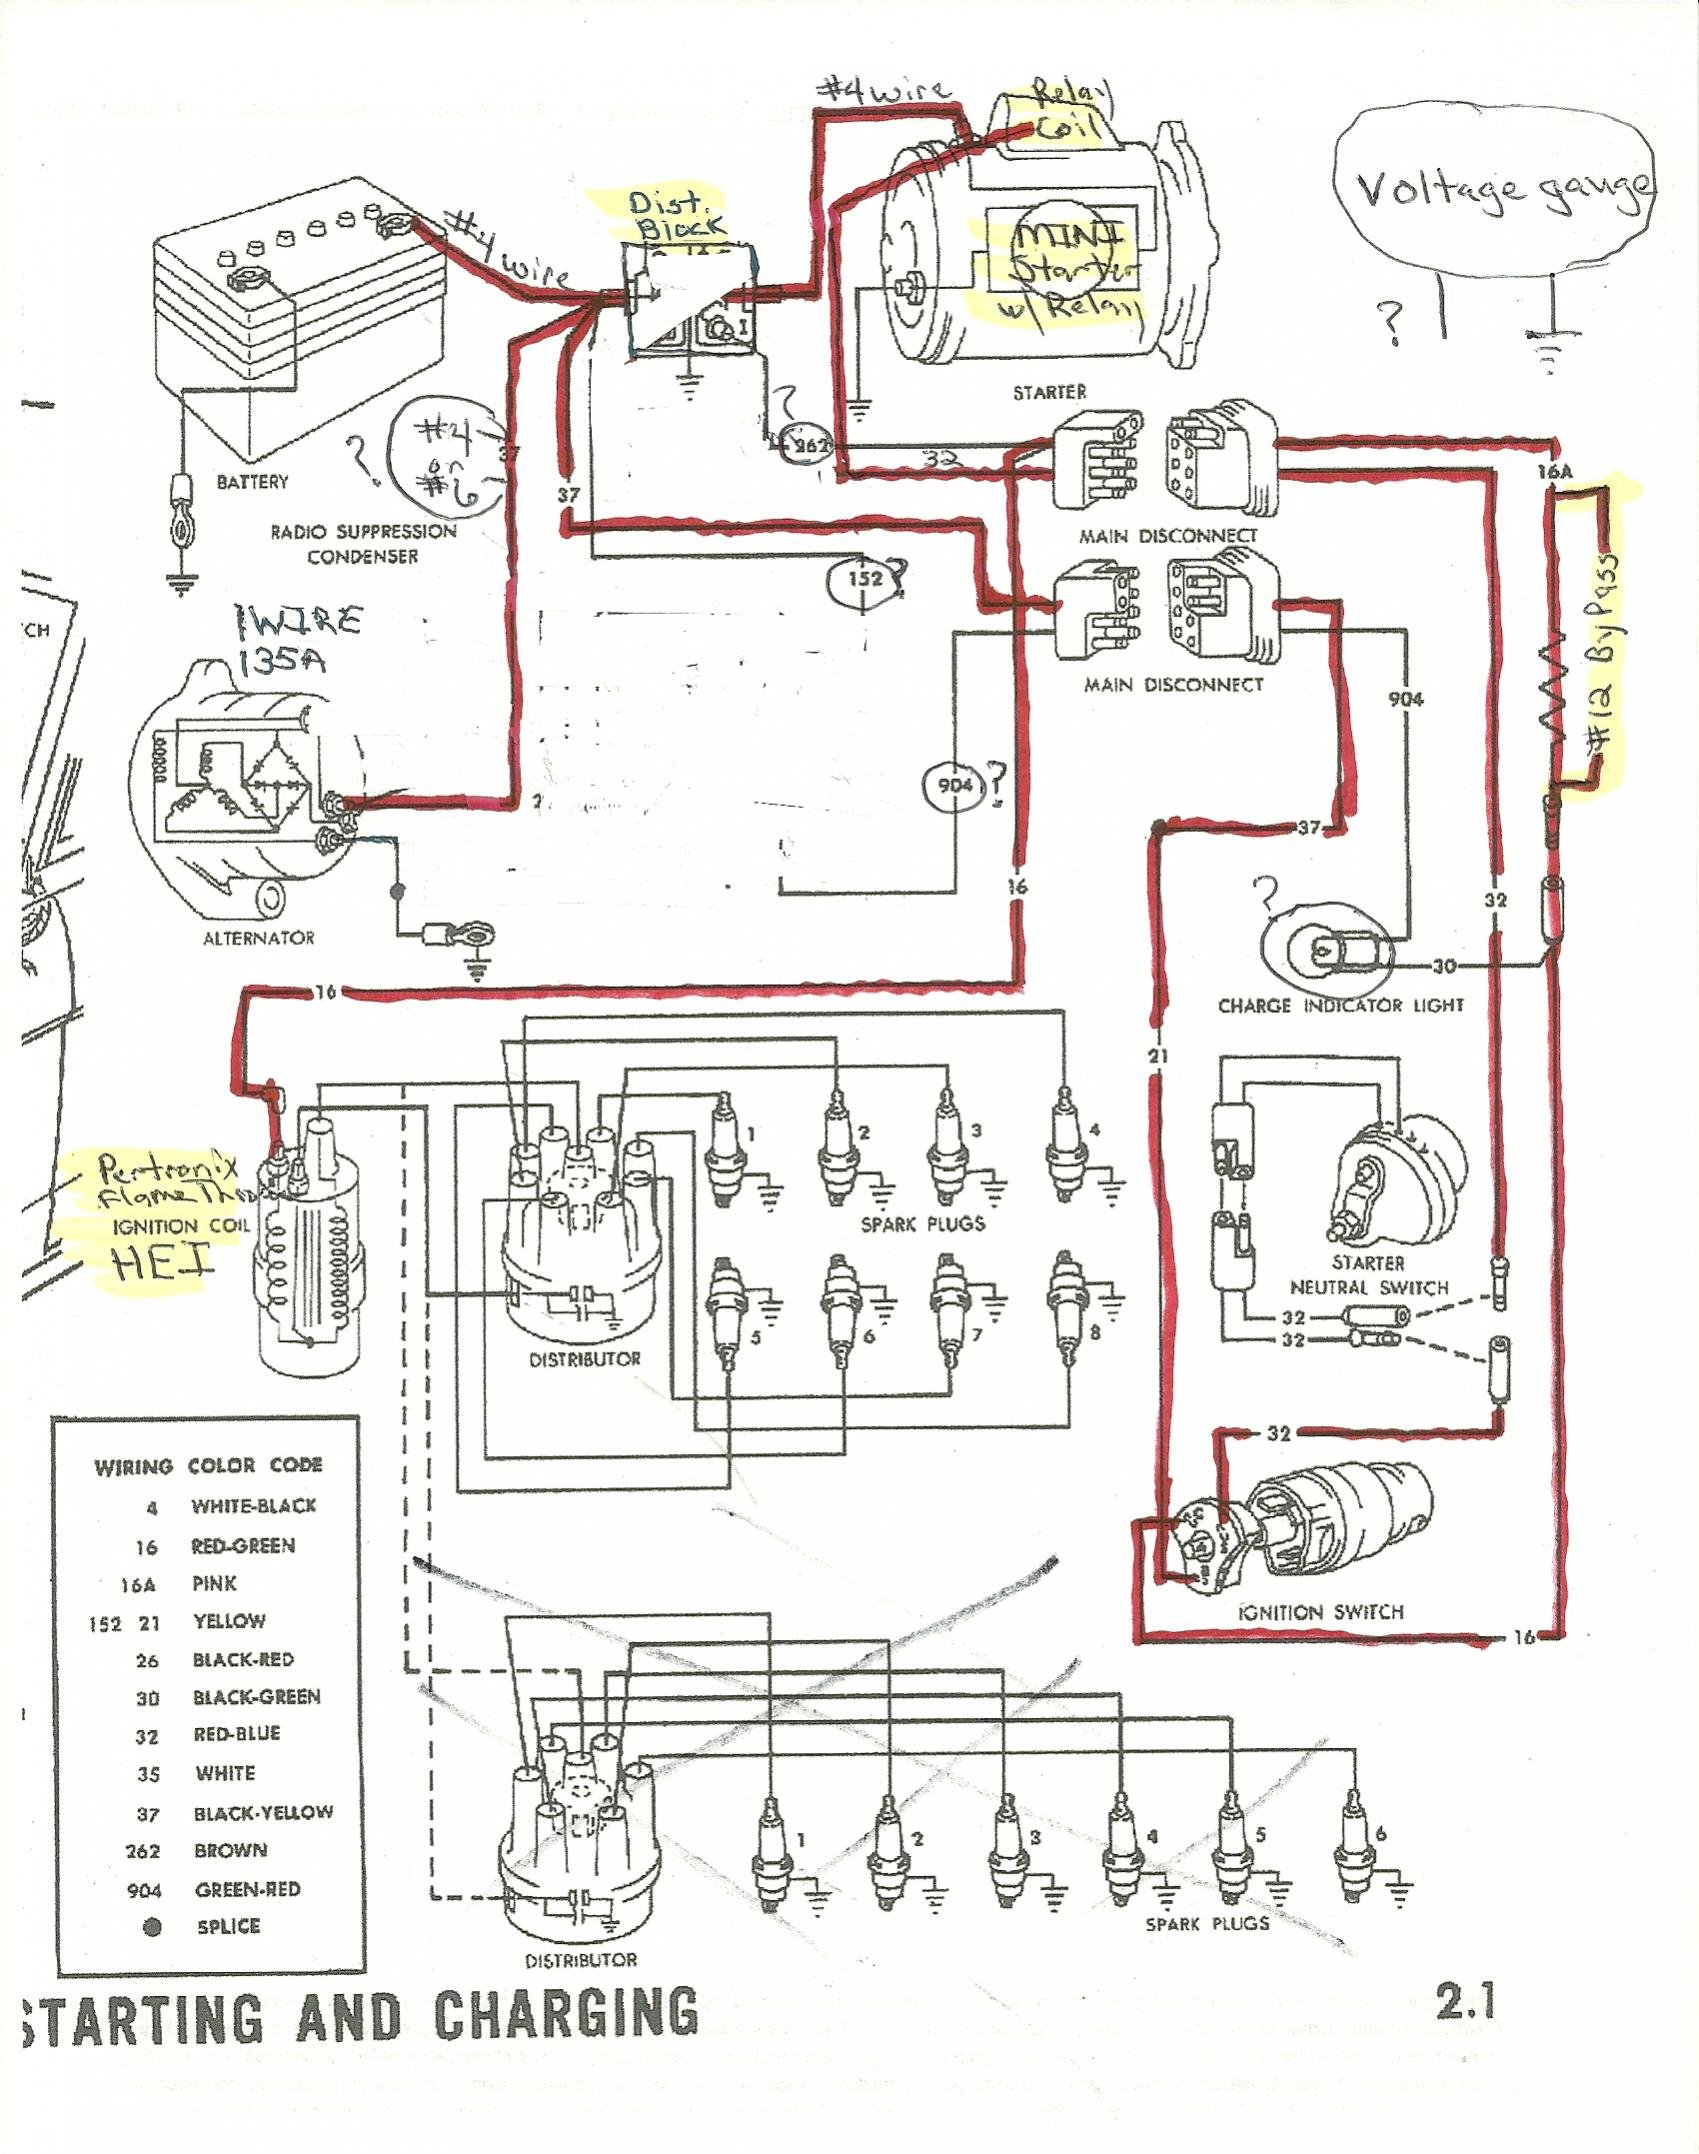 Ford Mustang Alternator Diagram - Wiring Diagram Online on 1967 mustang wiper motor wiring diagram, 1965 mustang fuel pump diagram, 1965 mustang brake line diagram, 1965 mustang starter solenoid, 1965 mustang engine diagram, mustang wiring harness diagram, 1965 mustang exhaust diagram, 1965 mustang assembly diagram, 1965 mustang 289 hipo engine, 1965 mustang outline, 1965 mustang blueprints, 1965 mustang door diagram, 1964 mustang wiring diagram, 1965 mustang burnt amber, 1966 mustang alternator diagram, 1965 mustang fuse box diagram, 1965 mustang voltage regulator diagram, ford mustang wiring diagram, 1965 mustang tachometer diagram, 1966 mustang wiring diagram,